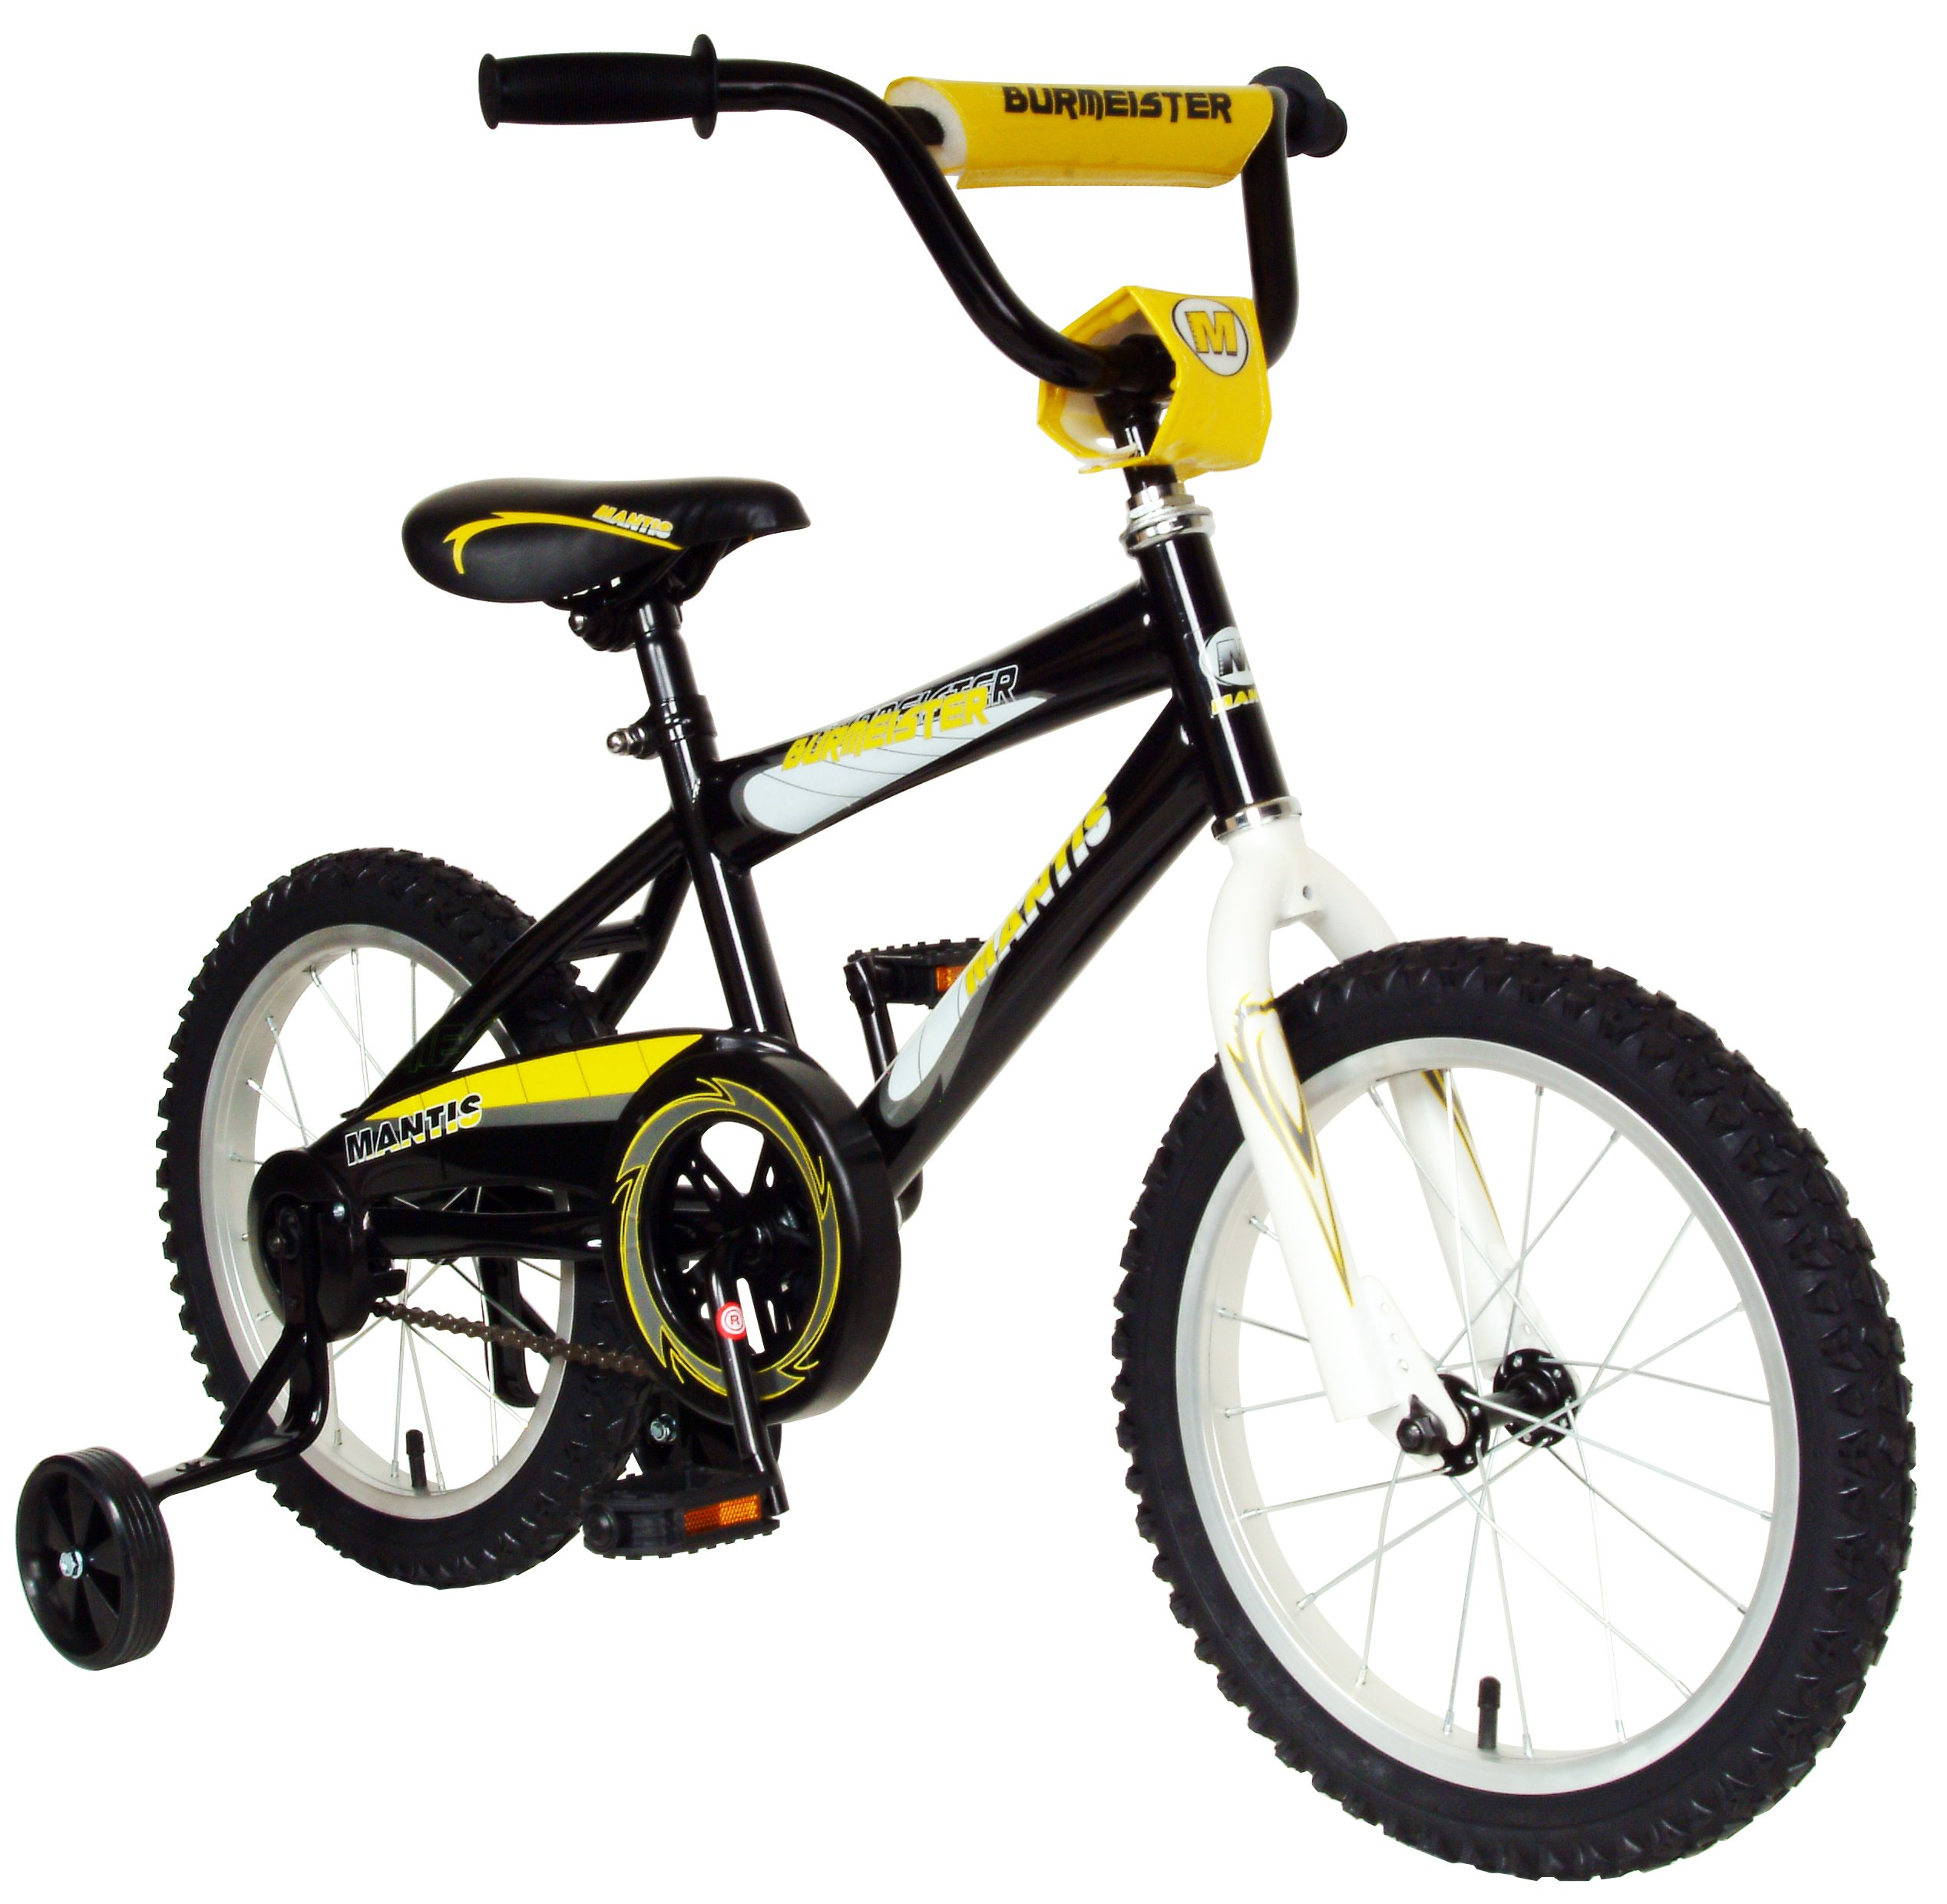 "Mantis Burmeister 16"" Boys Bicycle"